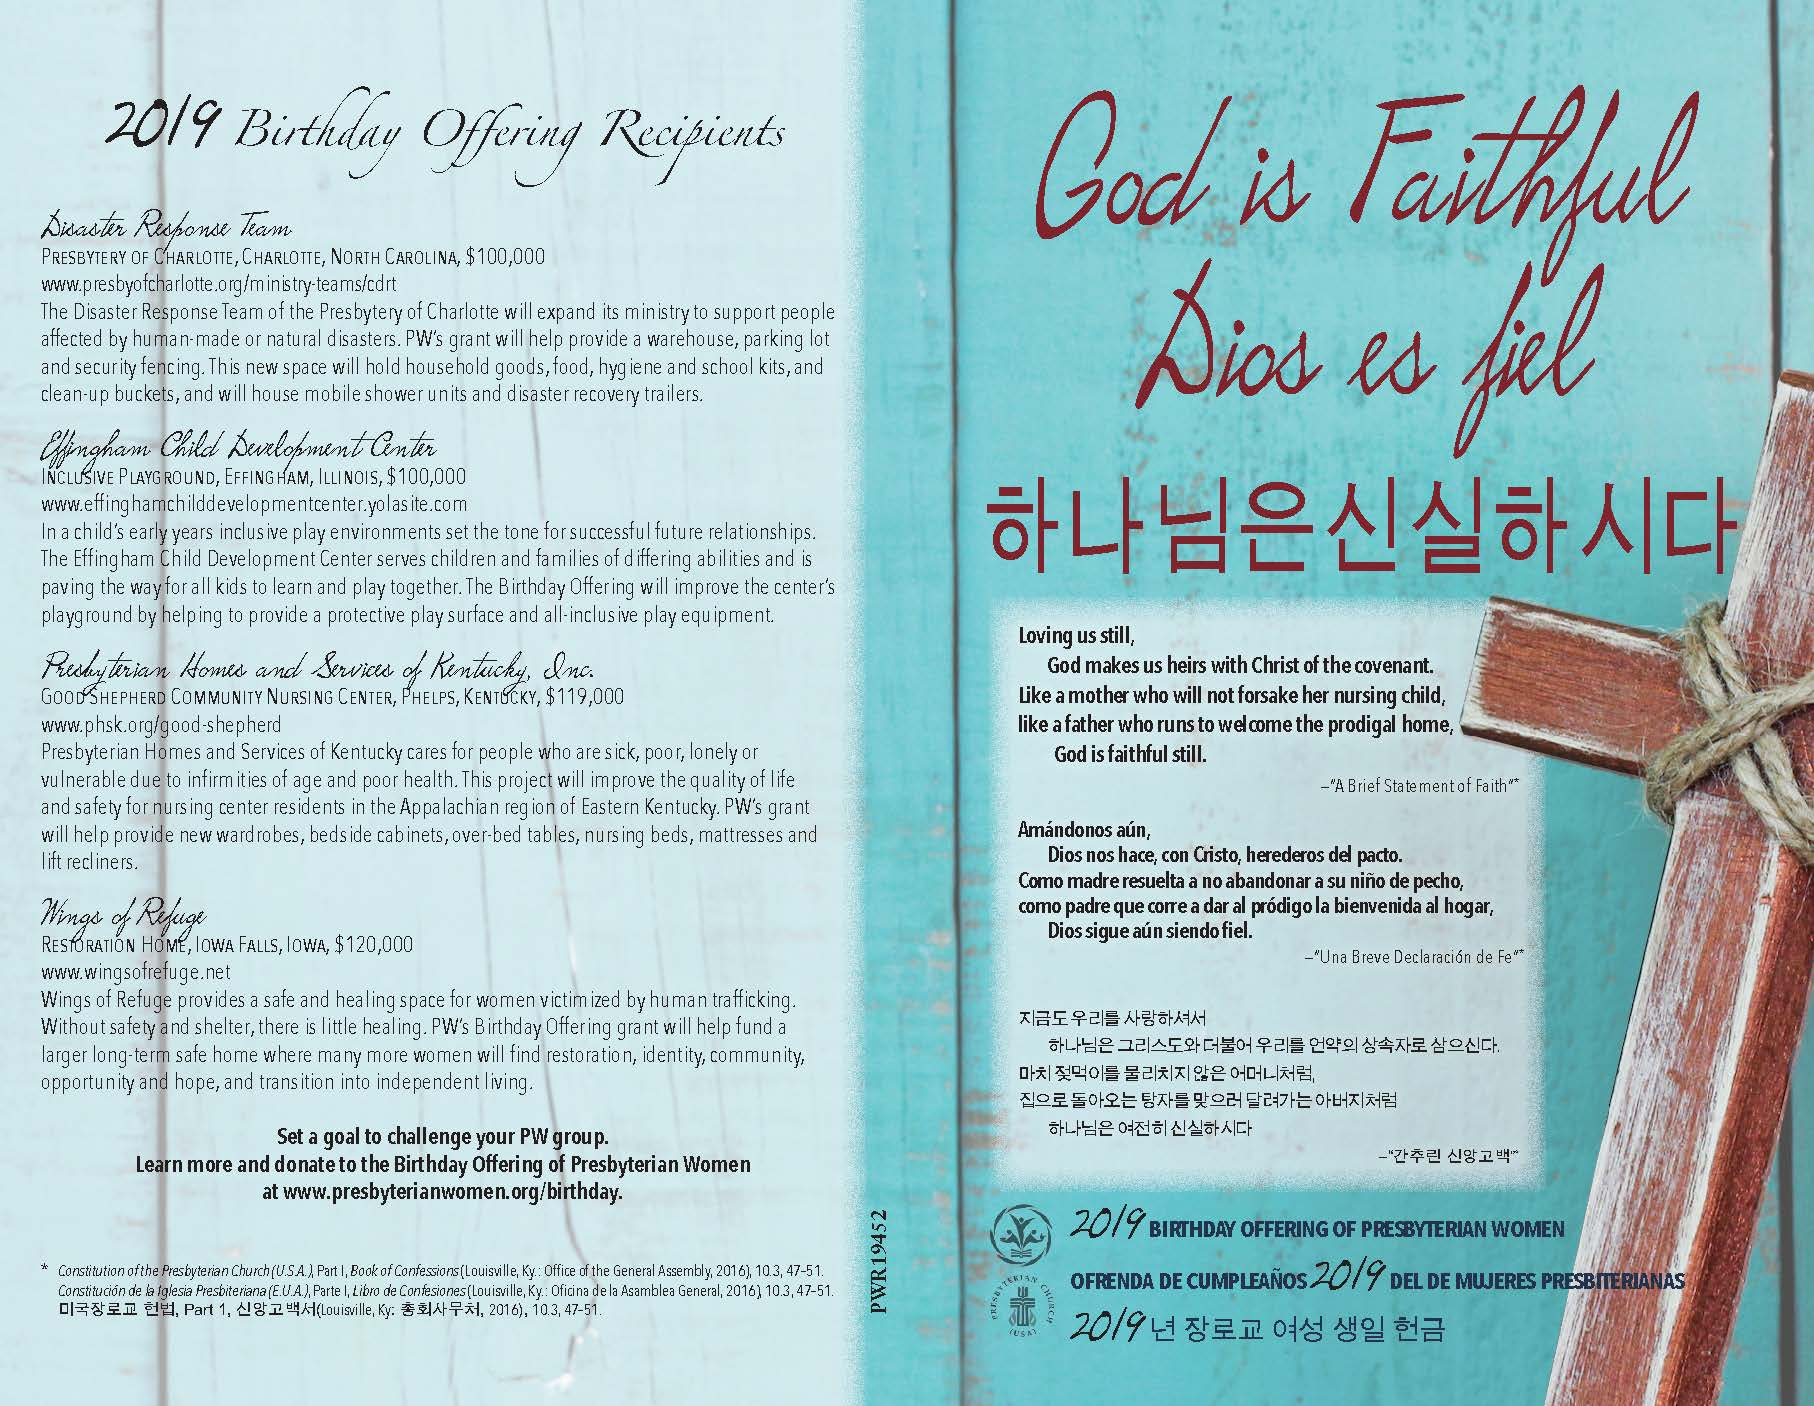 PWR19452 2019 Birthday Offering Bulletin Cover